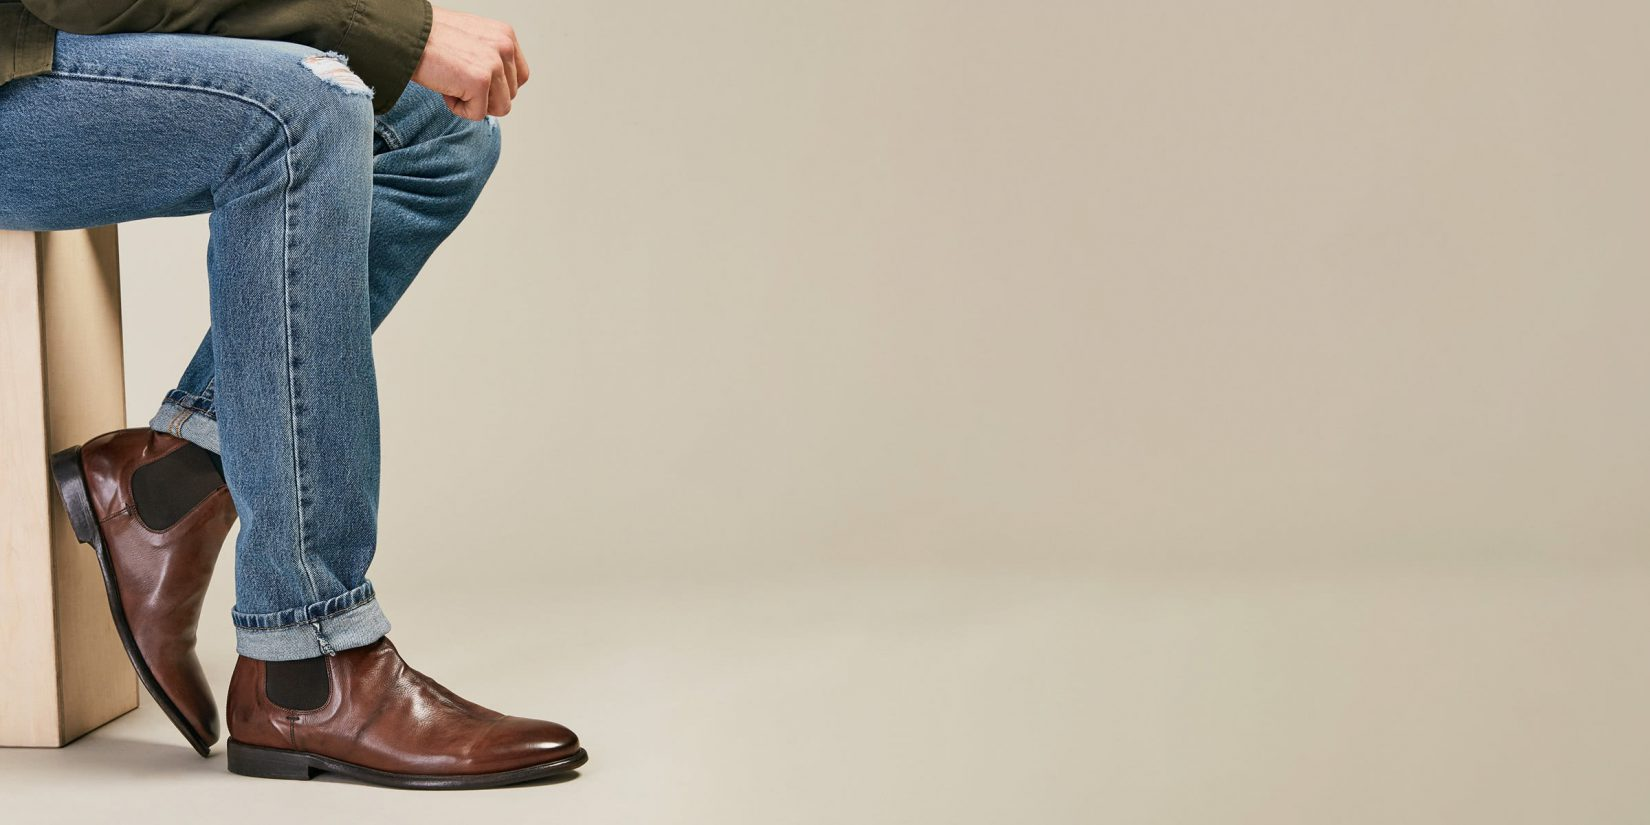 Suited And Booted: The Most Sought-After Chelsea Boots For Men